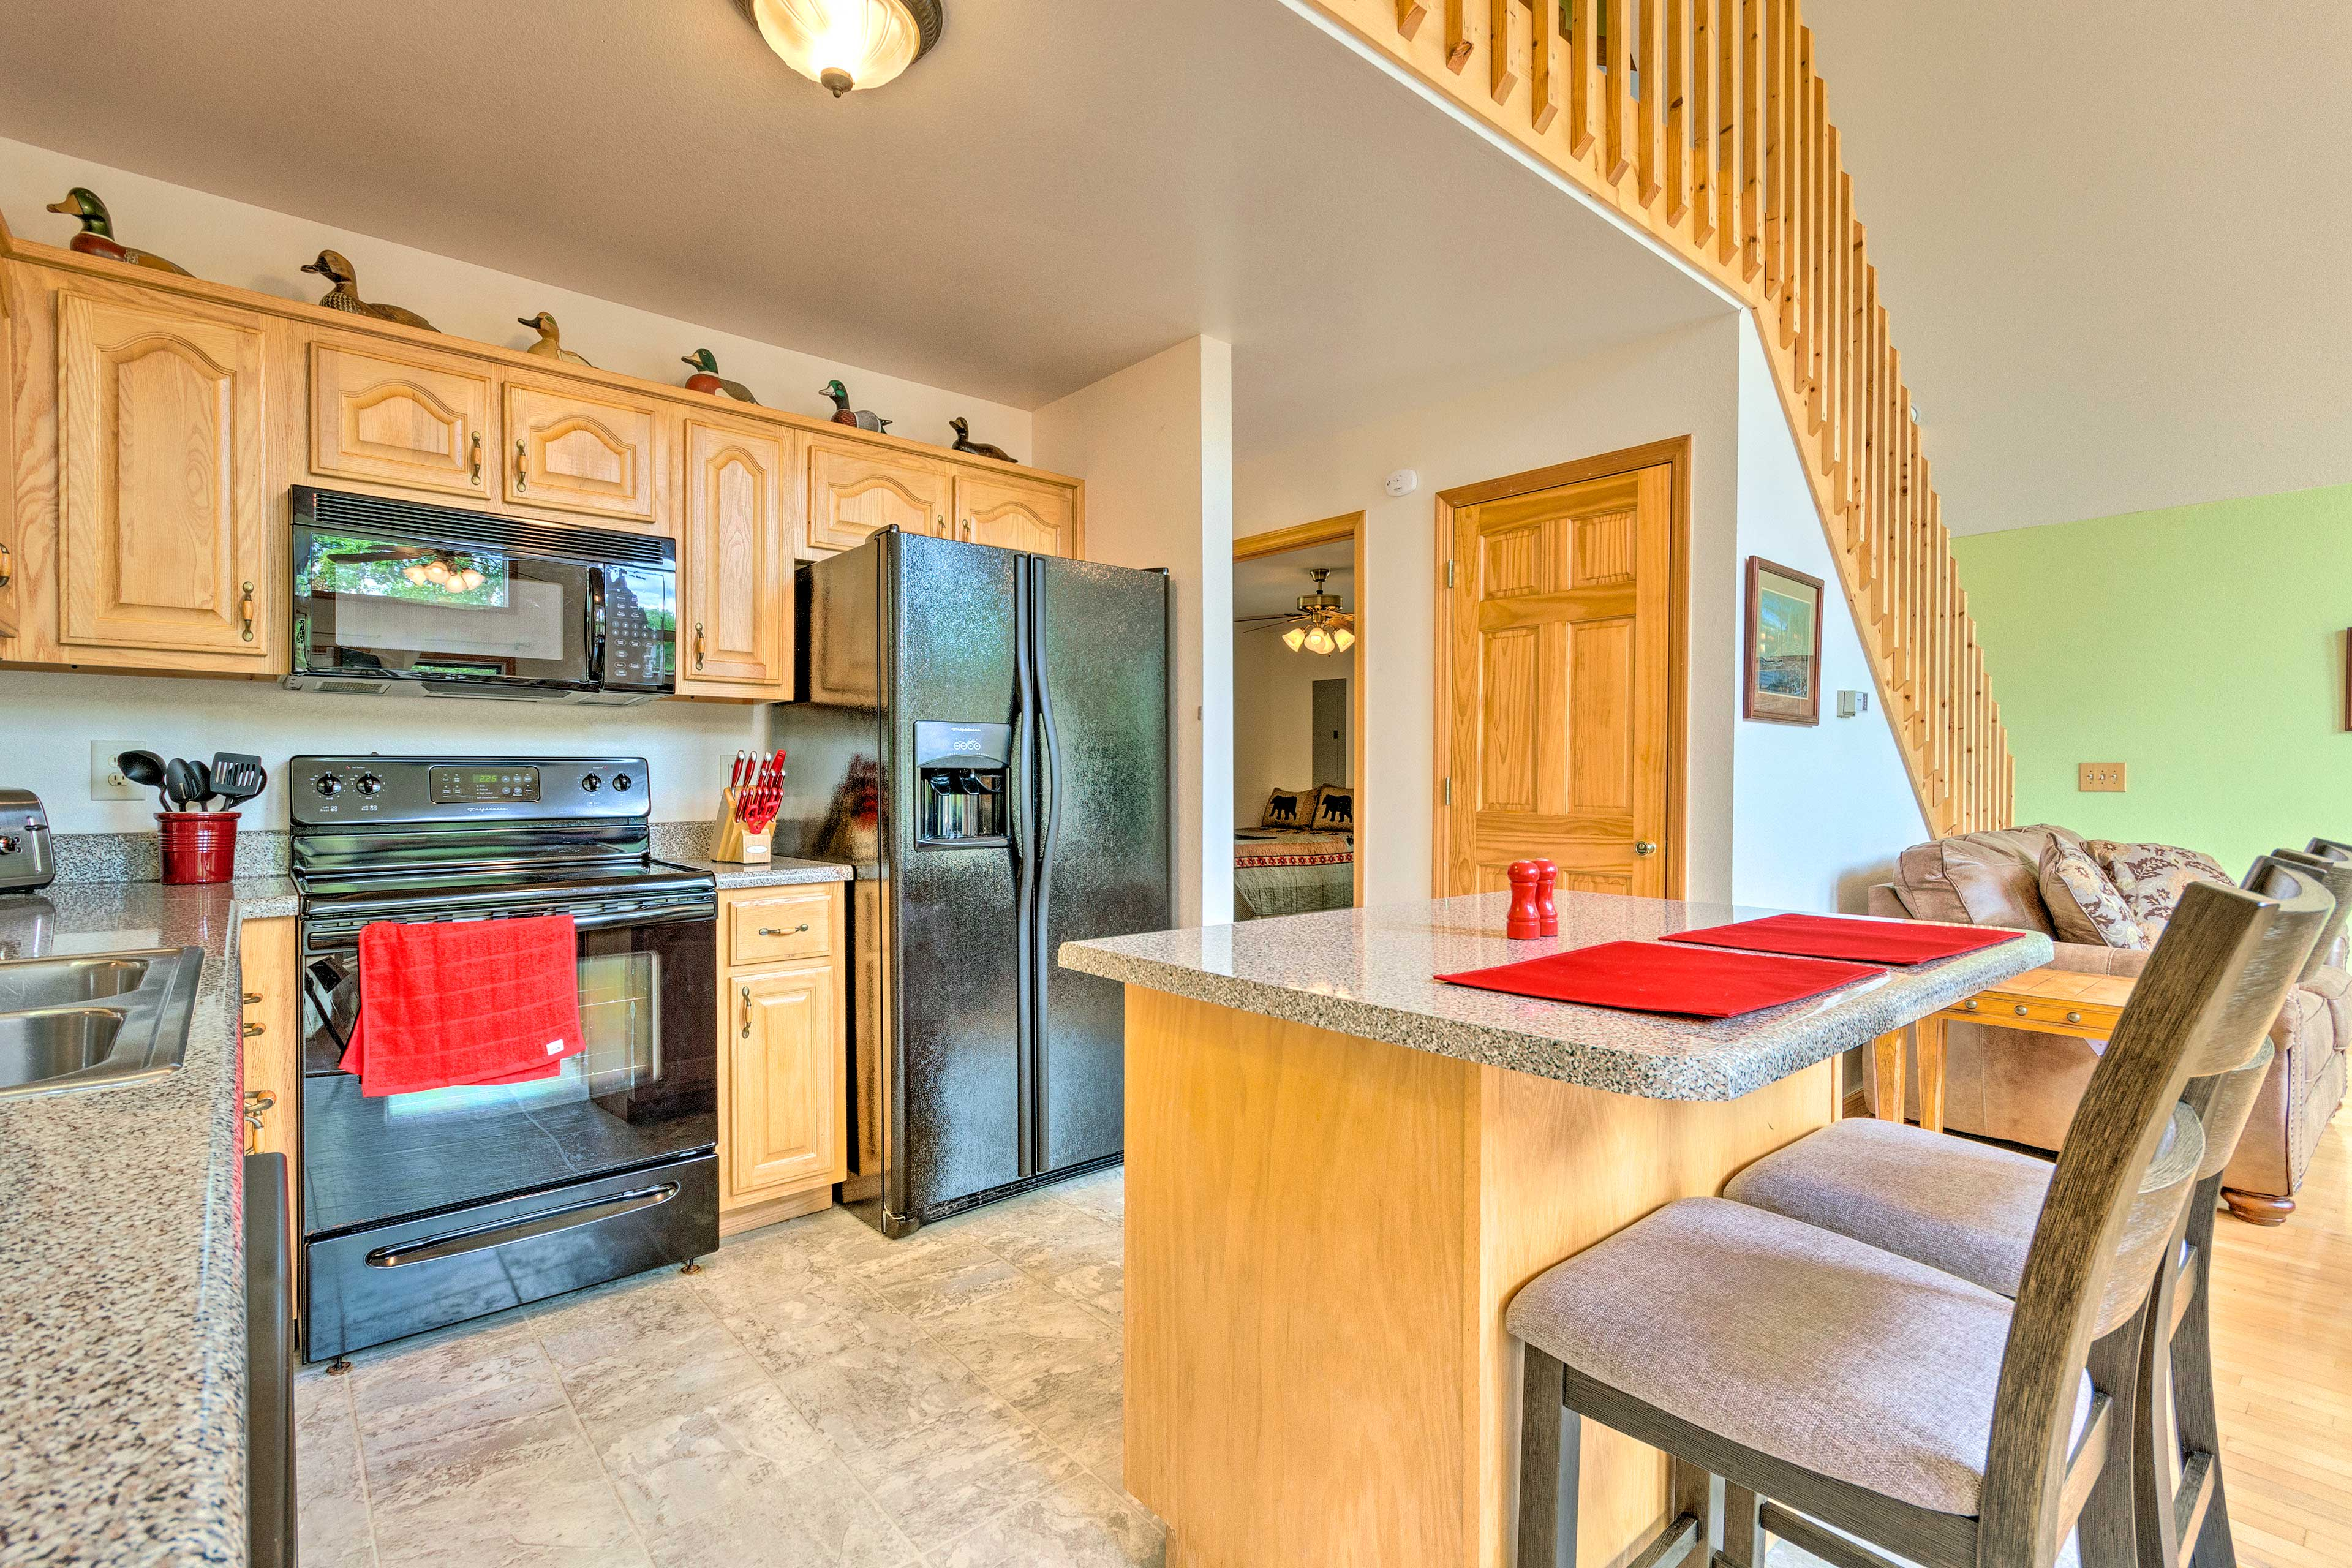 The kitchen features a knife set, a Keurig coffee maker, and plenty of storage!